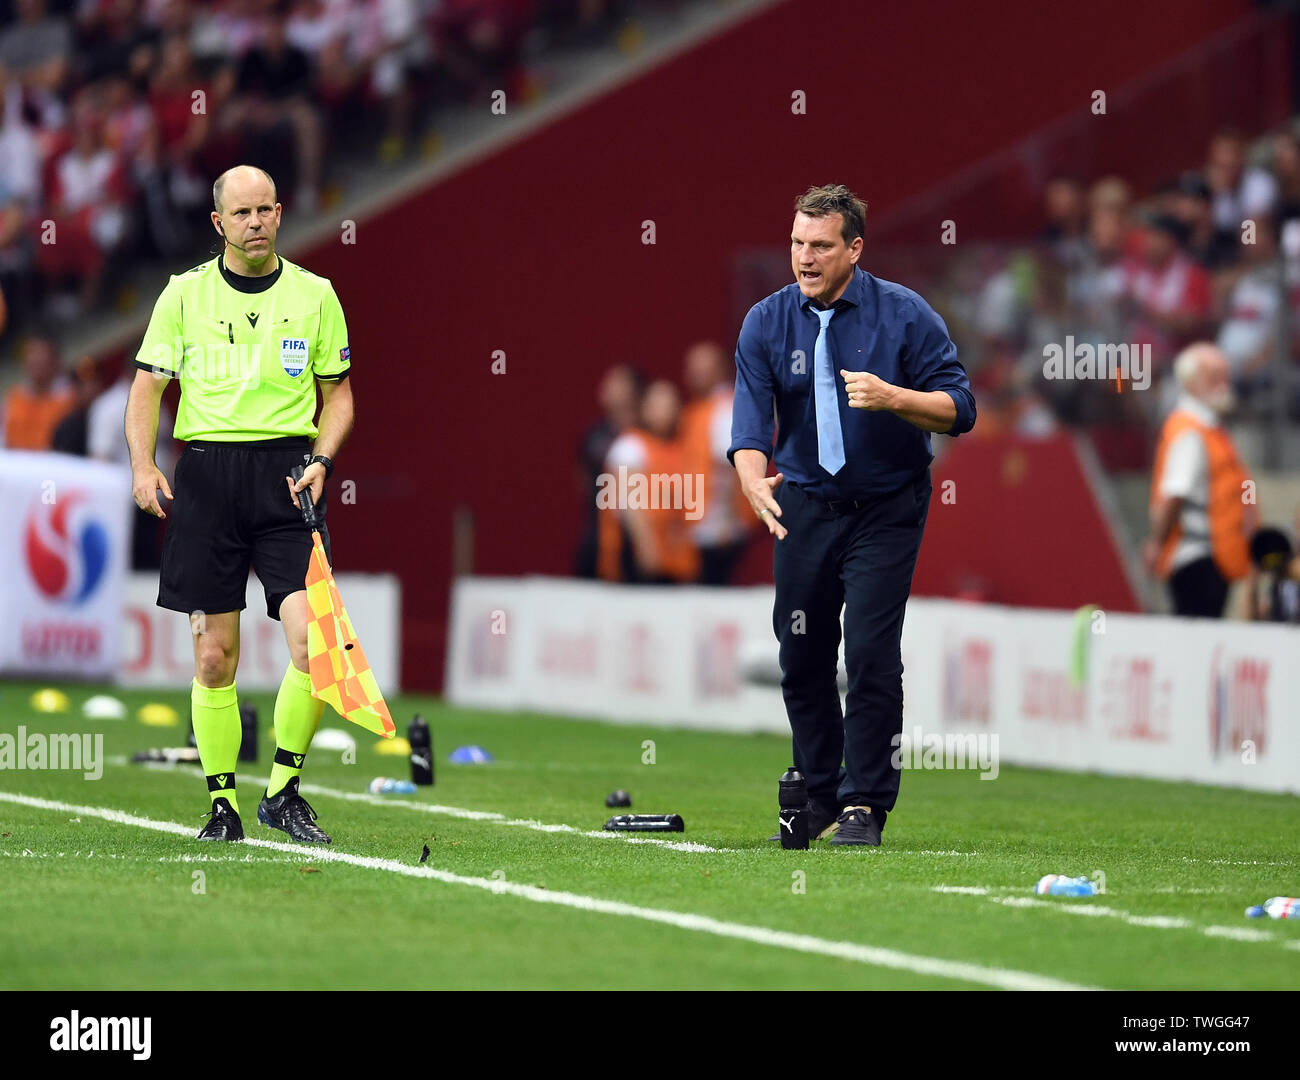 Warsaw, Poland, June 10, 2019: EURO 2020 qualifing round, group stage, Poland wins 4:0 with Izarel on PGE Narodowy. Andreas Herzog coach (Izrael) - Stock Image